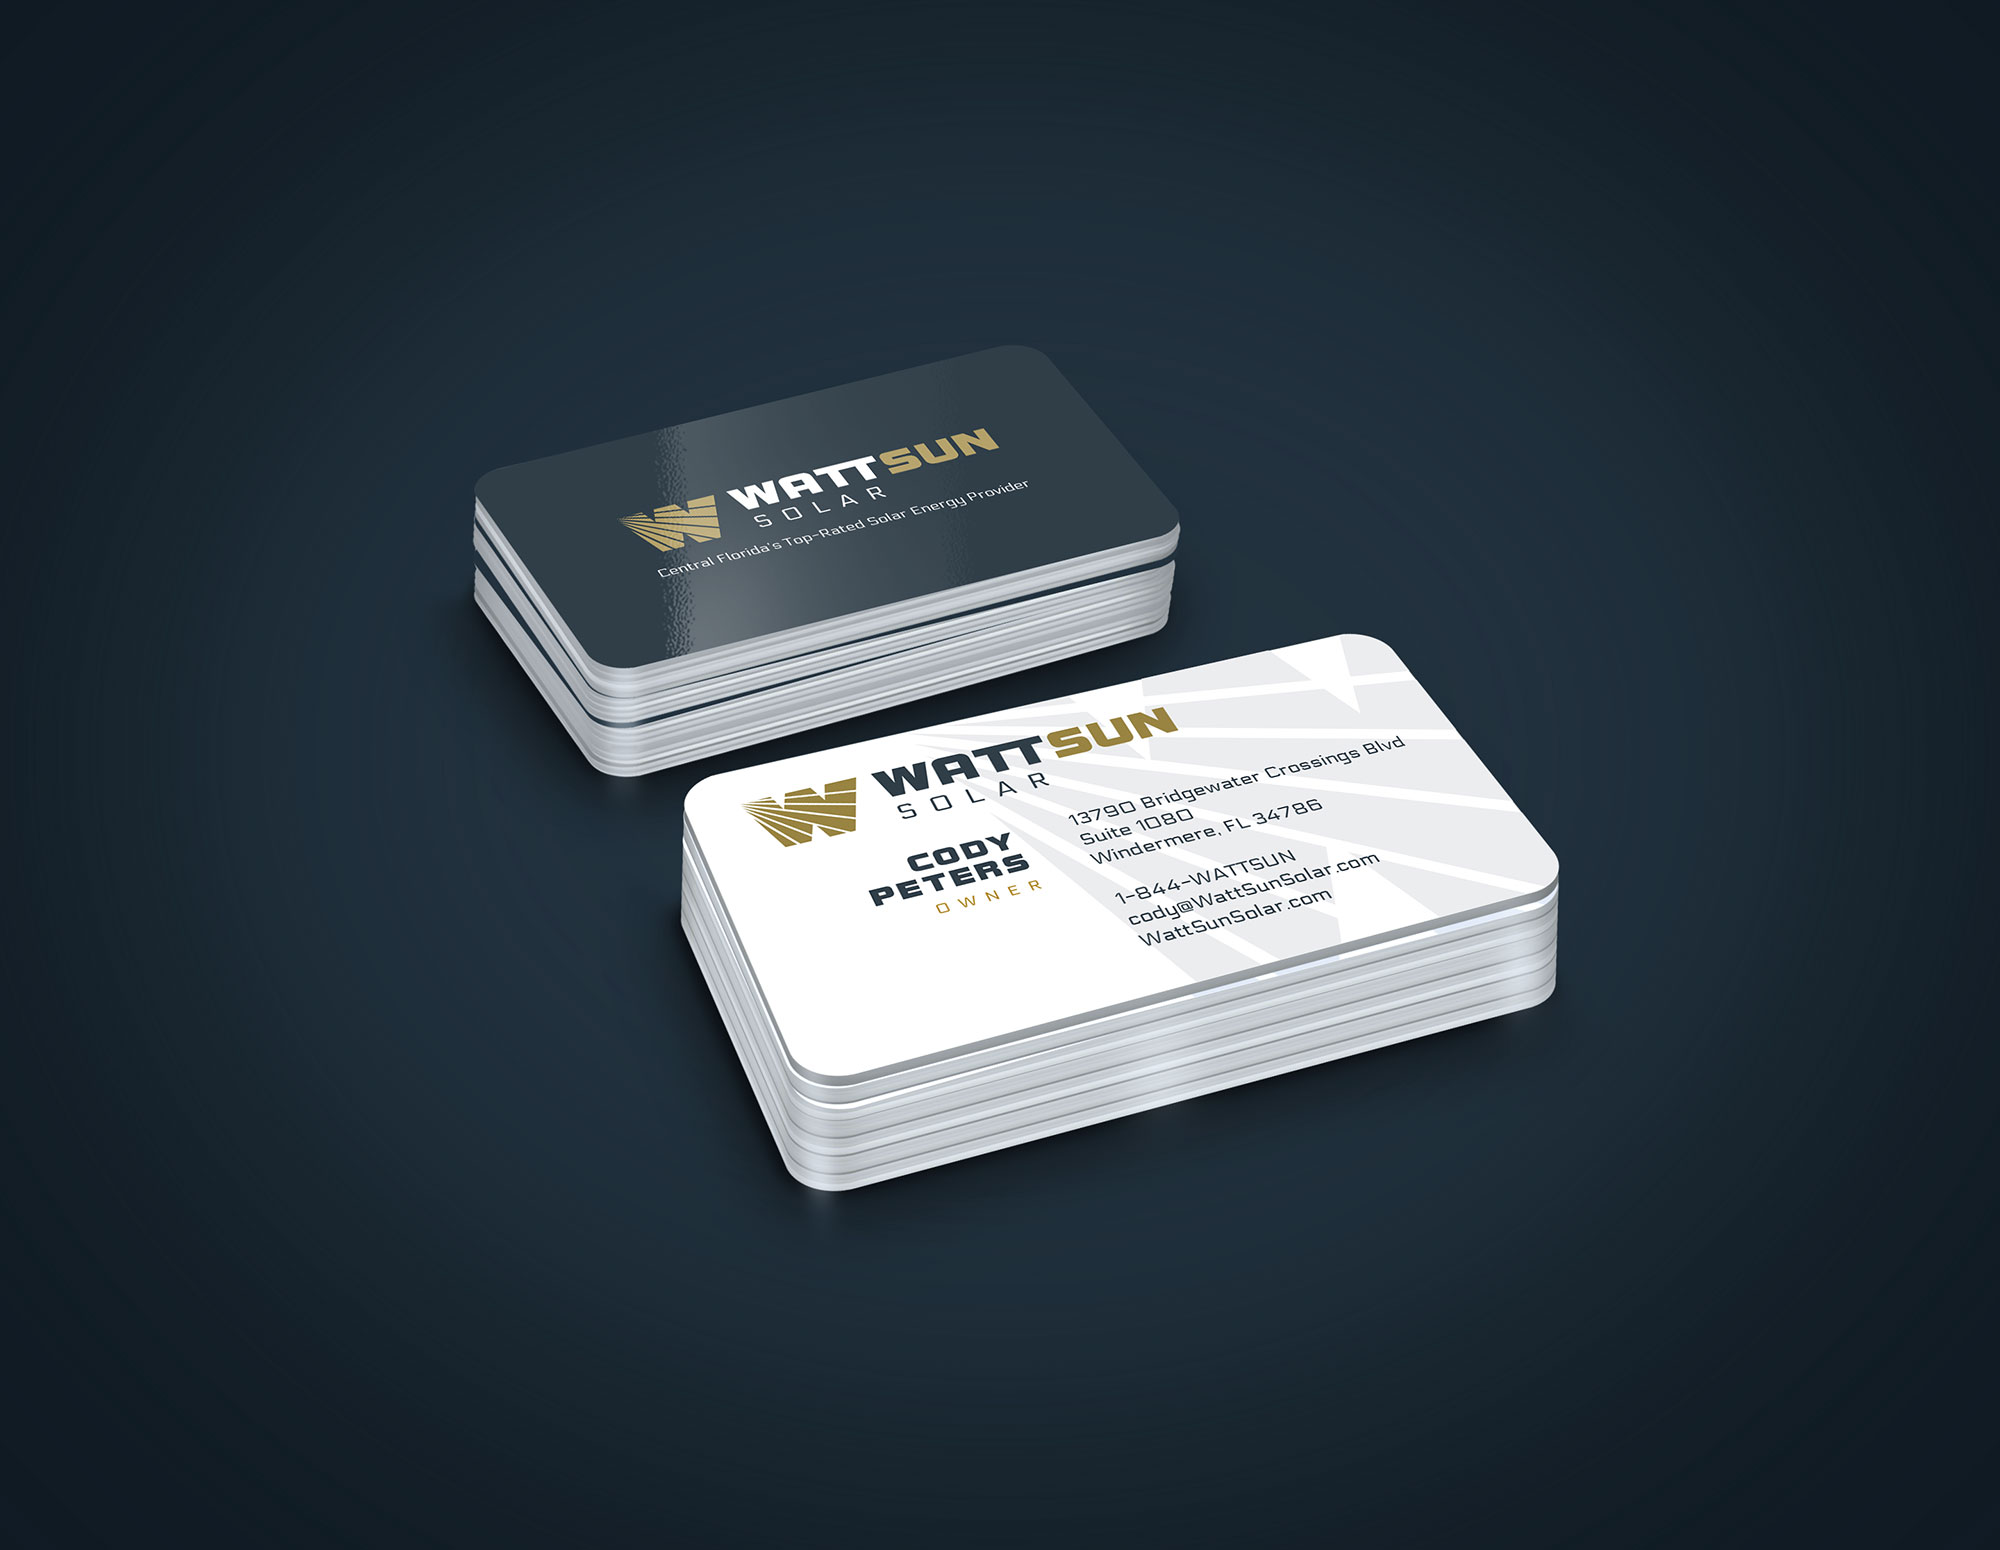 wattsun business card design